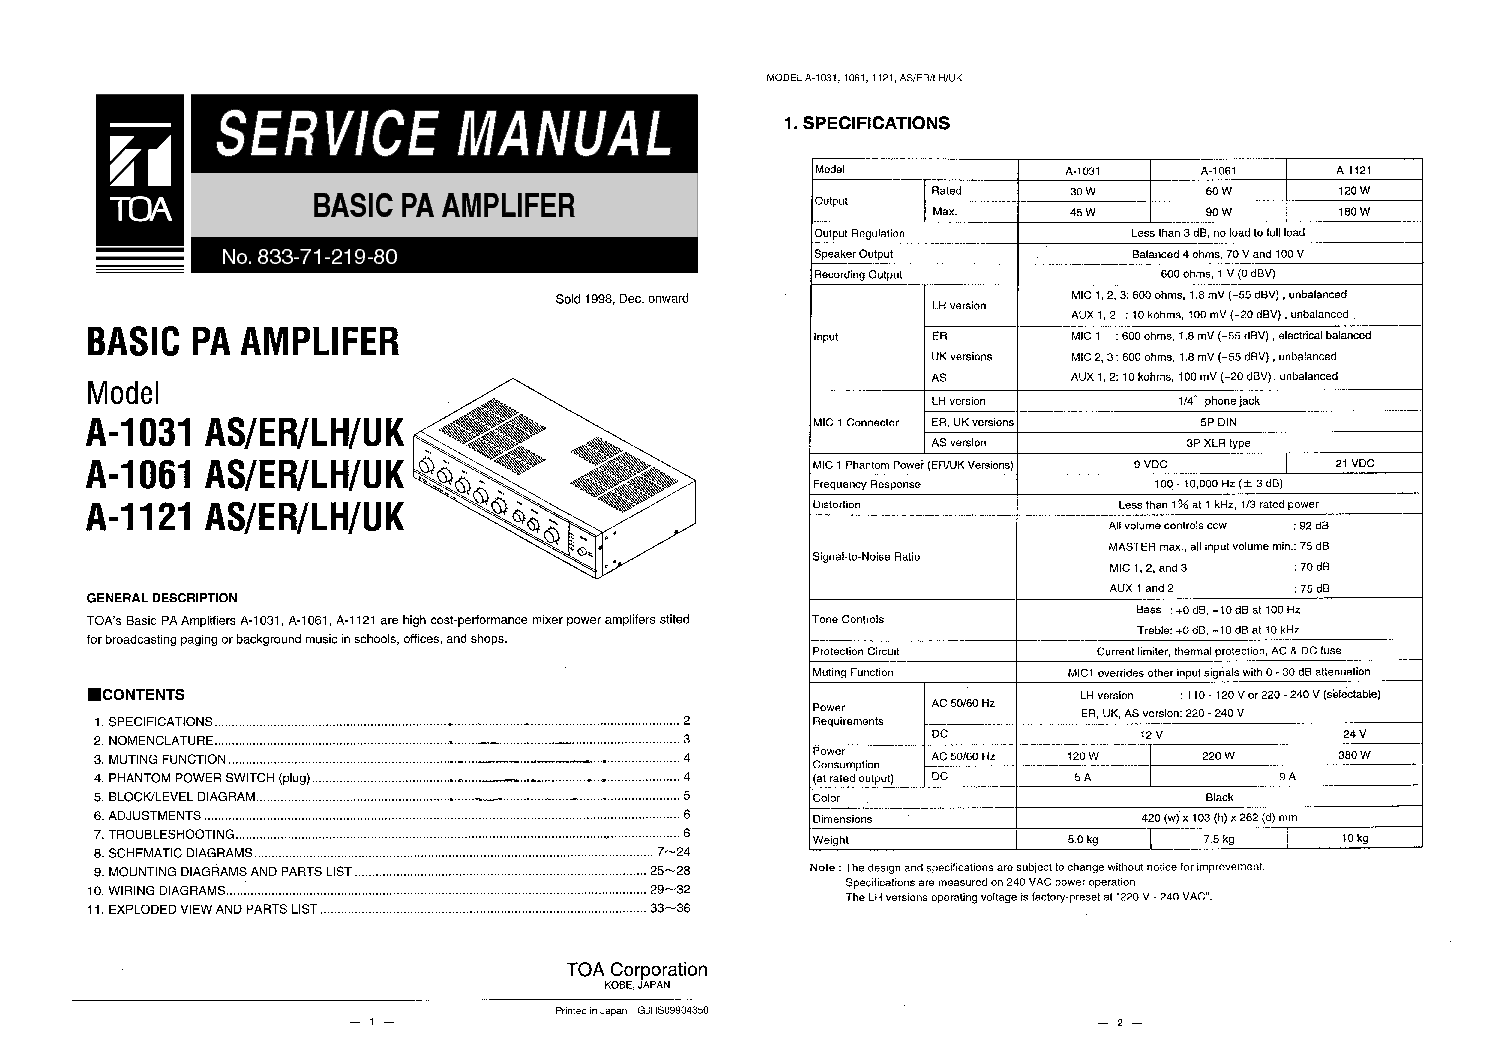 TOA A-1031 AS ER LH UK 1061 1121 E Service Manual download